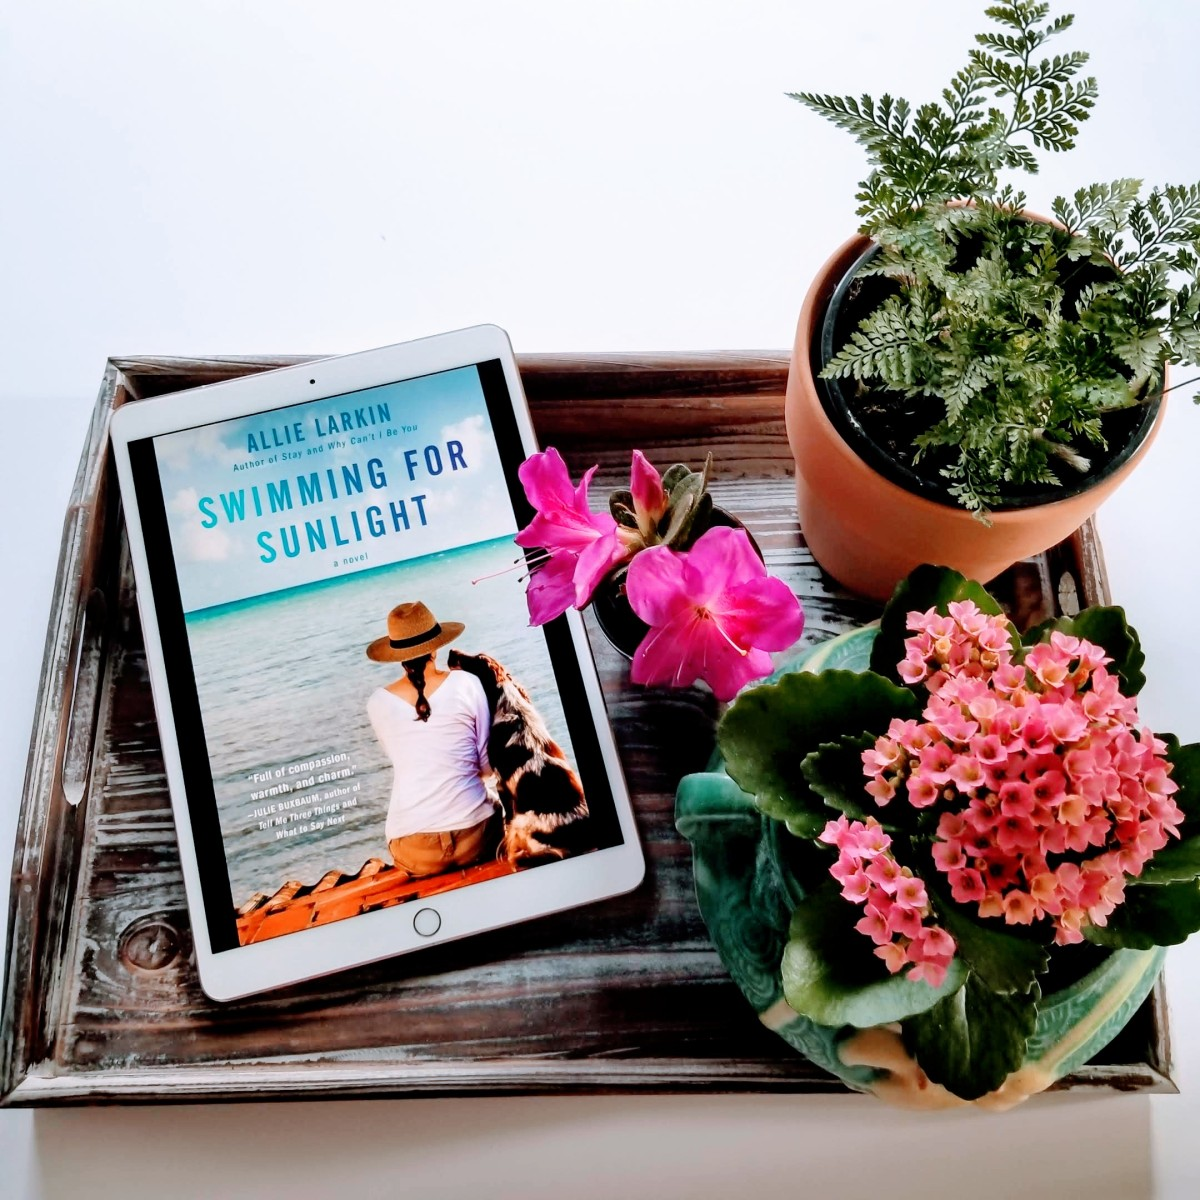 Swimming for Sunlight by Allie Larkin #bookreview #tarheelreader #thrsunlight @allielarkin @atriabooks #swimmingforsunlight